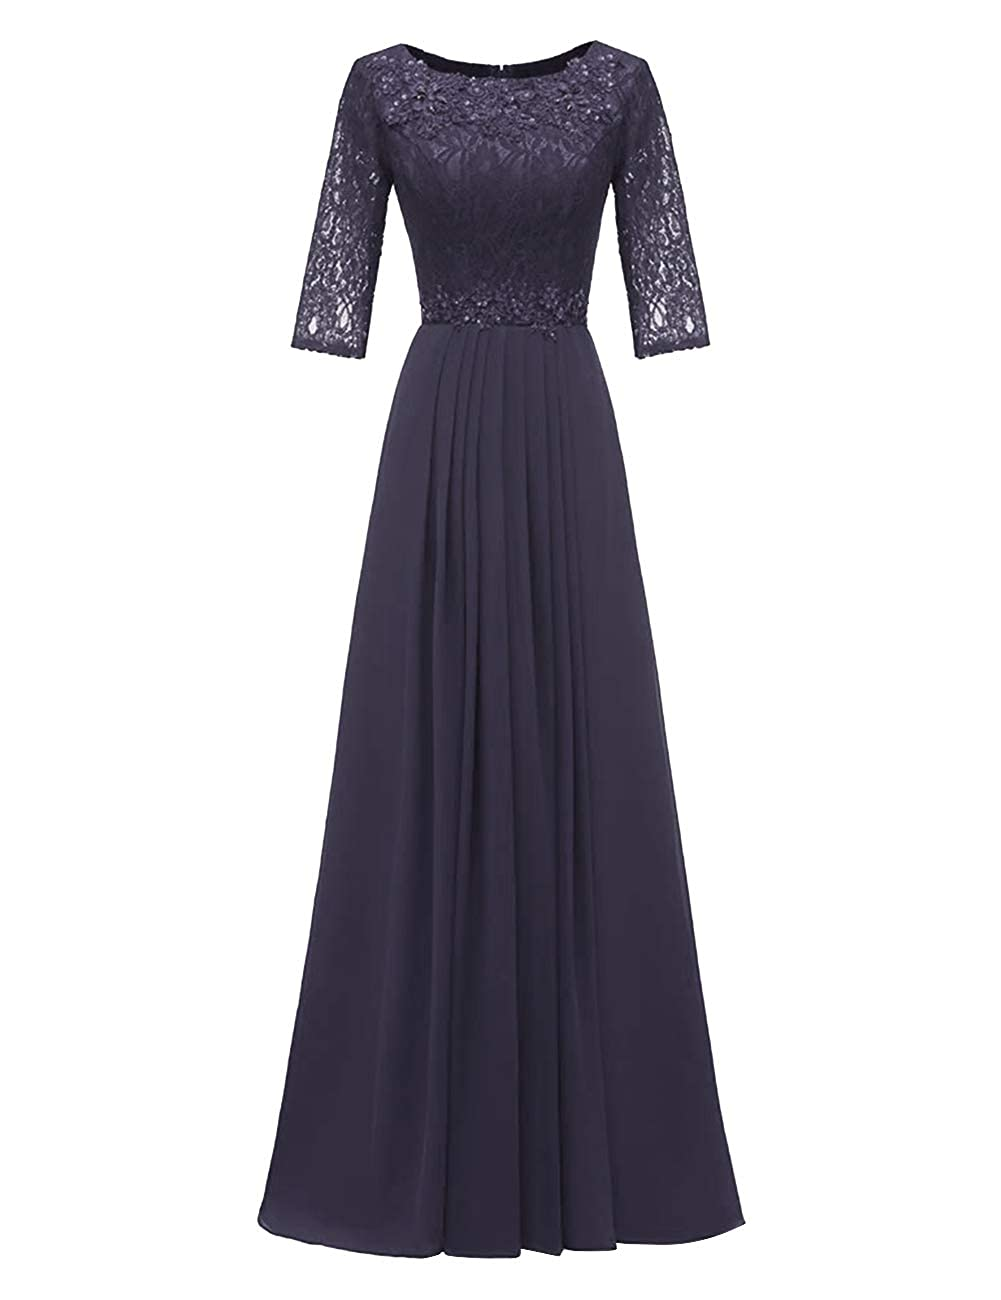 Dark Navy H.S.D Evening Dresses Long Prom Dresses Lace Bridesmaid Dresses Evening Formal Gowns